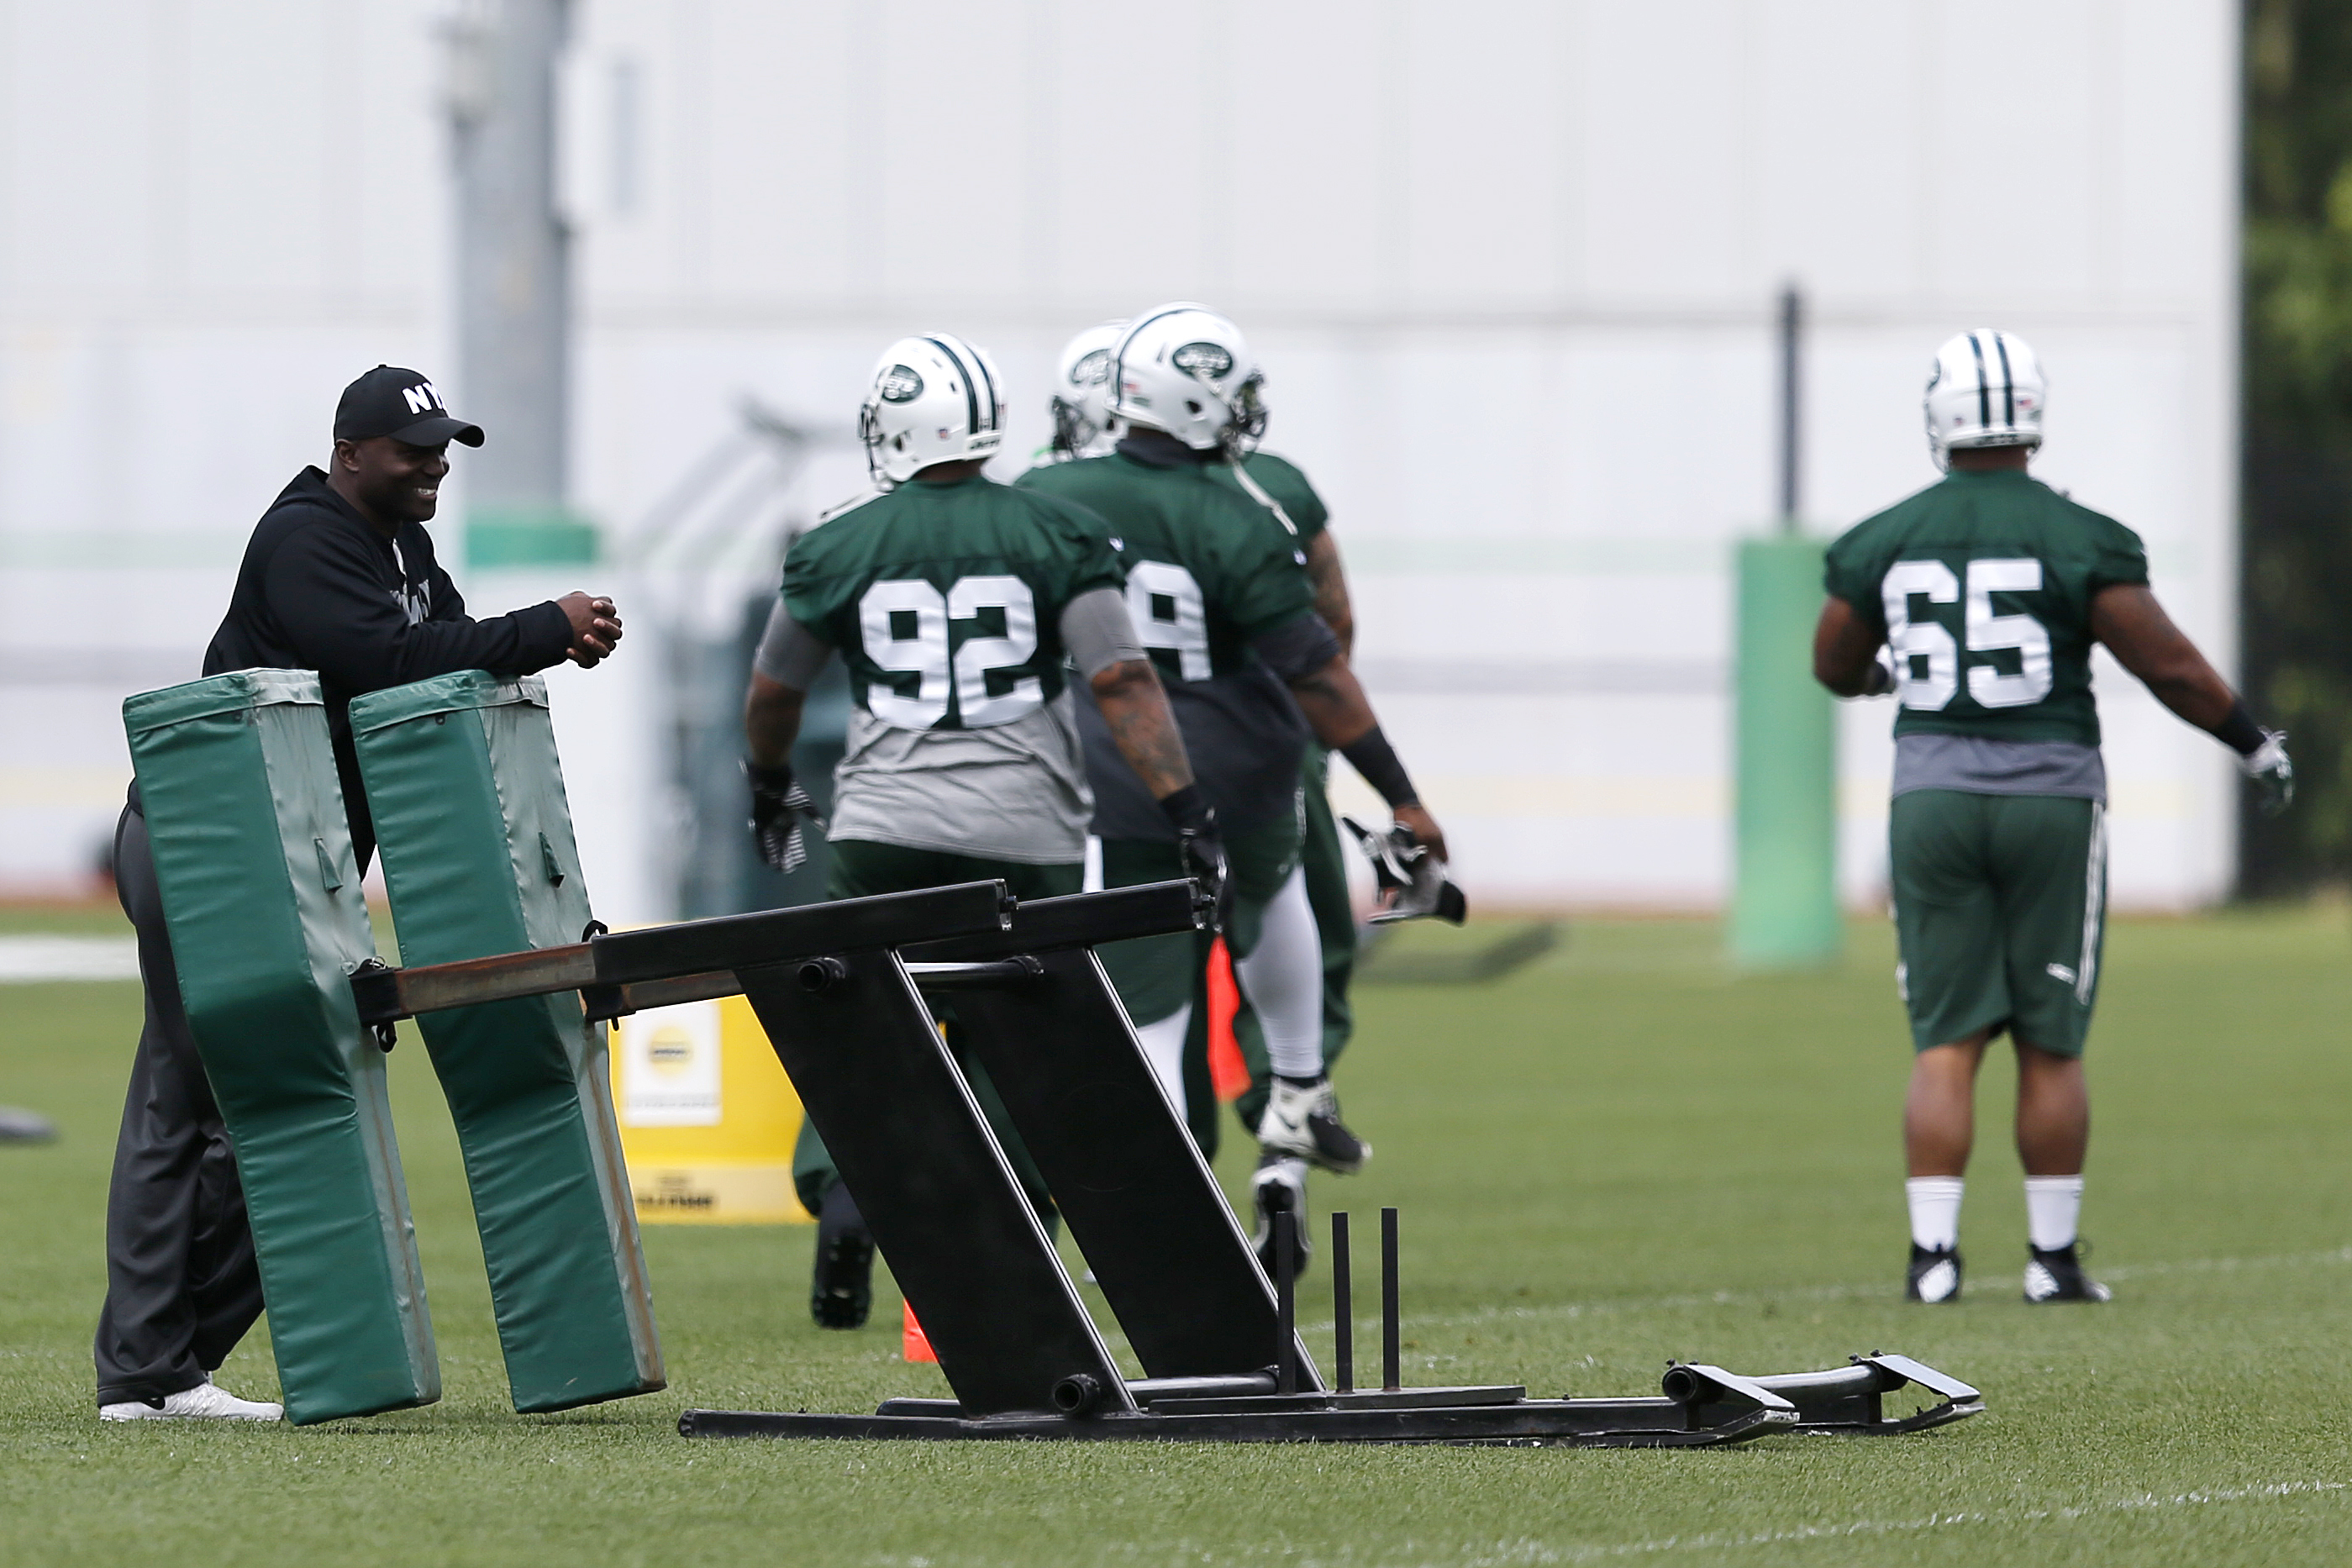 New York Jets head coach Todd Bowles, left, looks on as defensive players warm up during organized team activities at the team's NFL football training center, Wednesday, June 3, 2015, in Florham Park, N.J. (AP Photo/Julio Cortez)